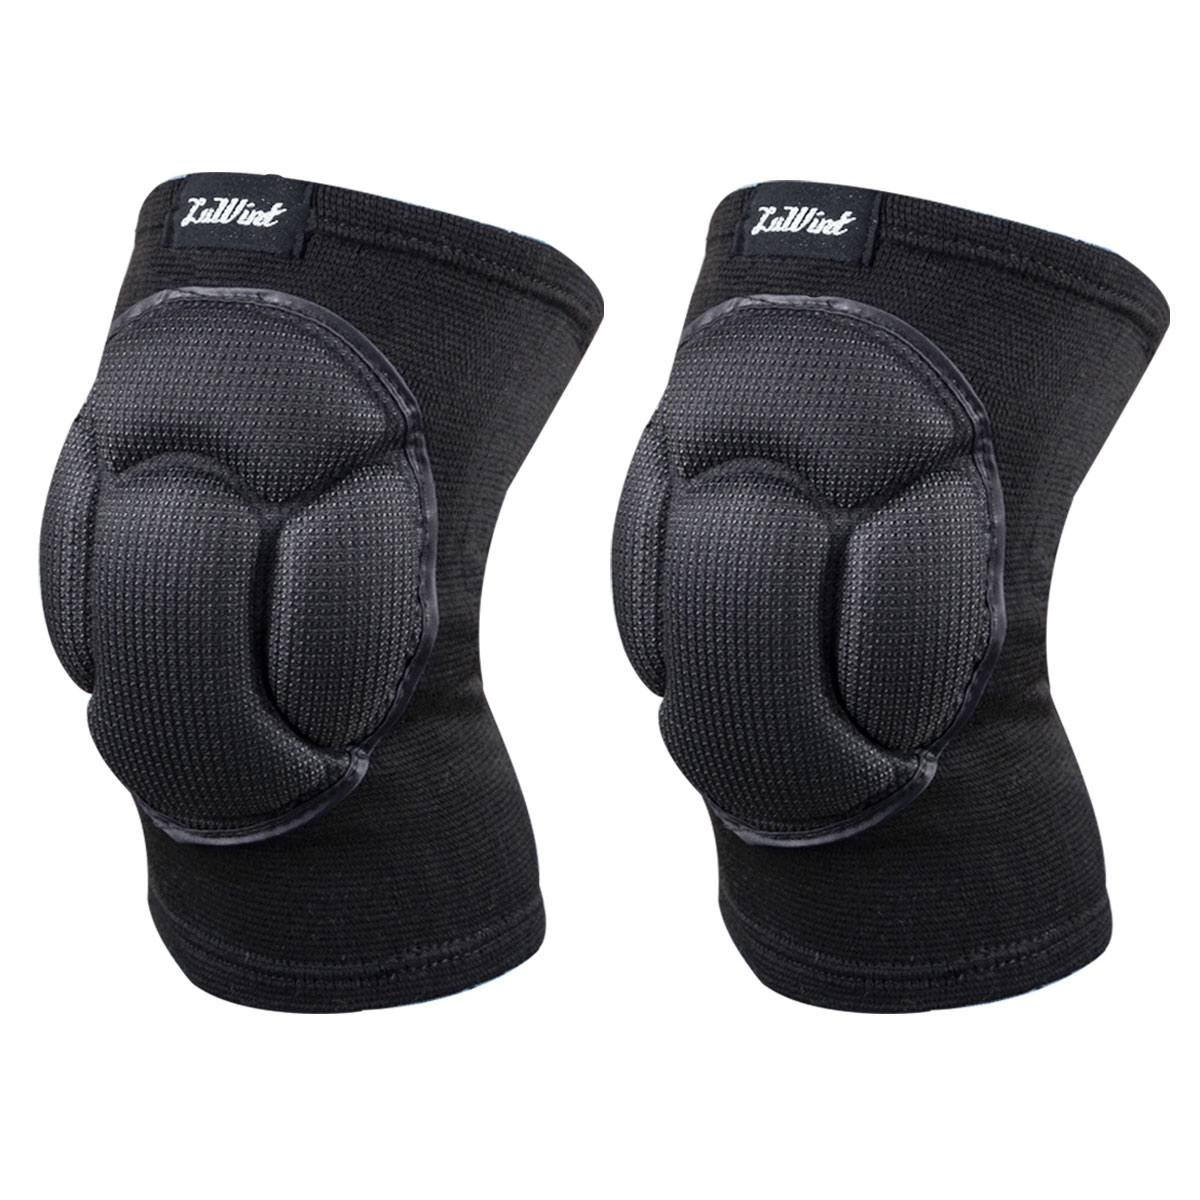 The wicketkeeper kneepad sponge sports kneepad hip-hop volleyball knee pad